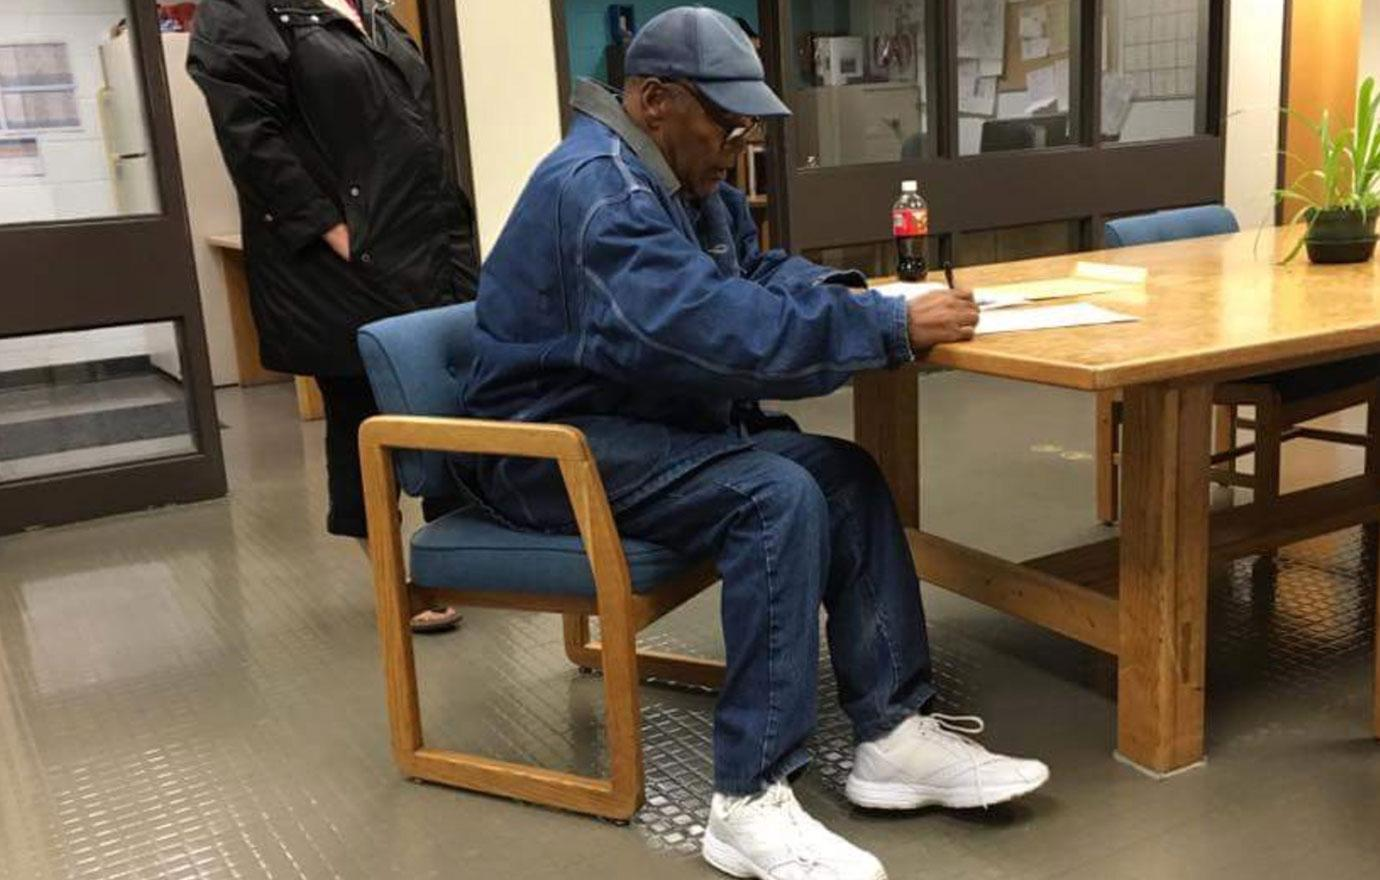 O.J. Simpson Released From Prison See Video